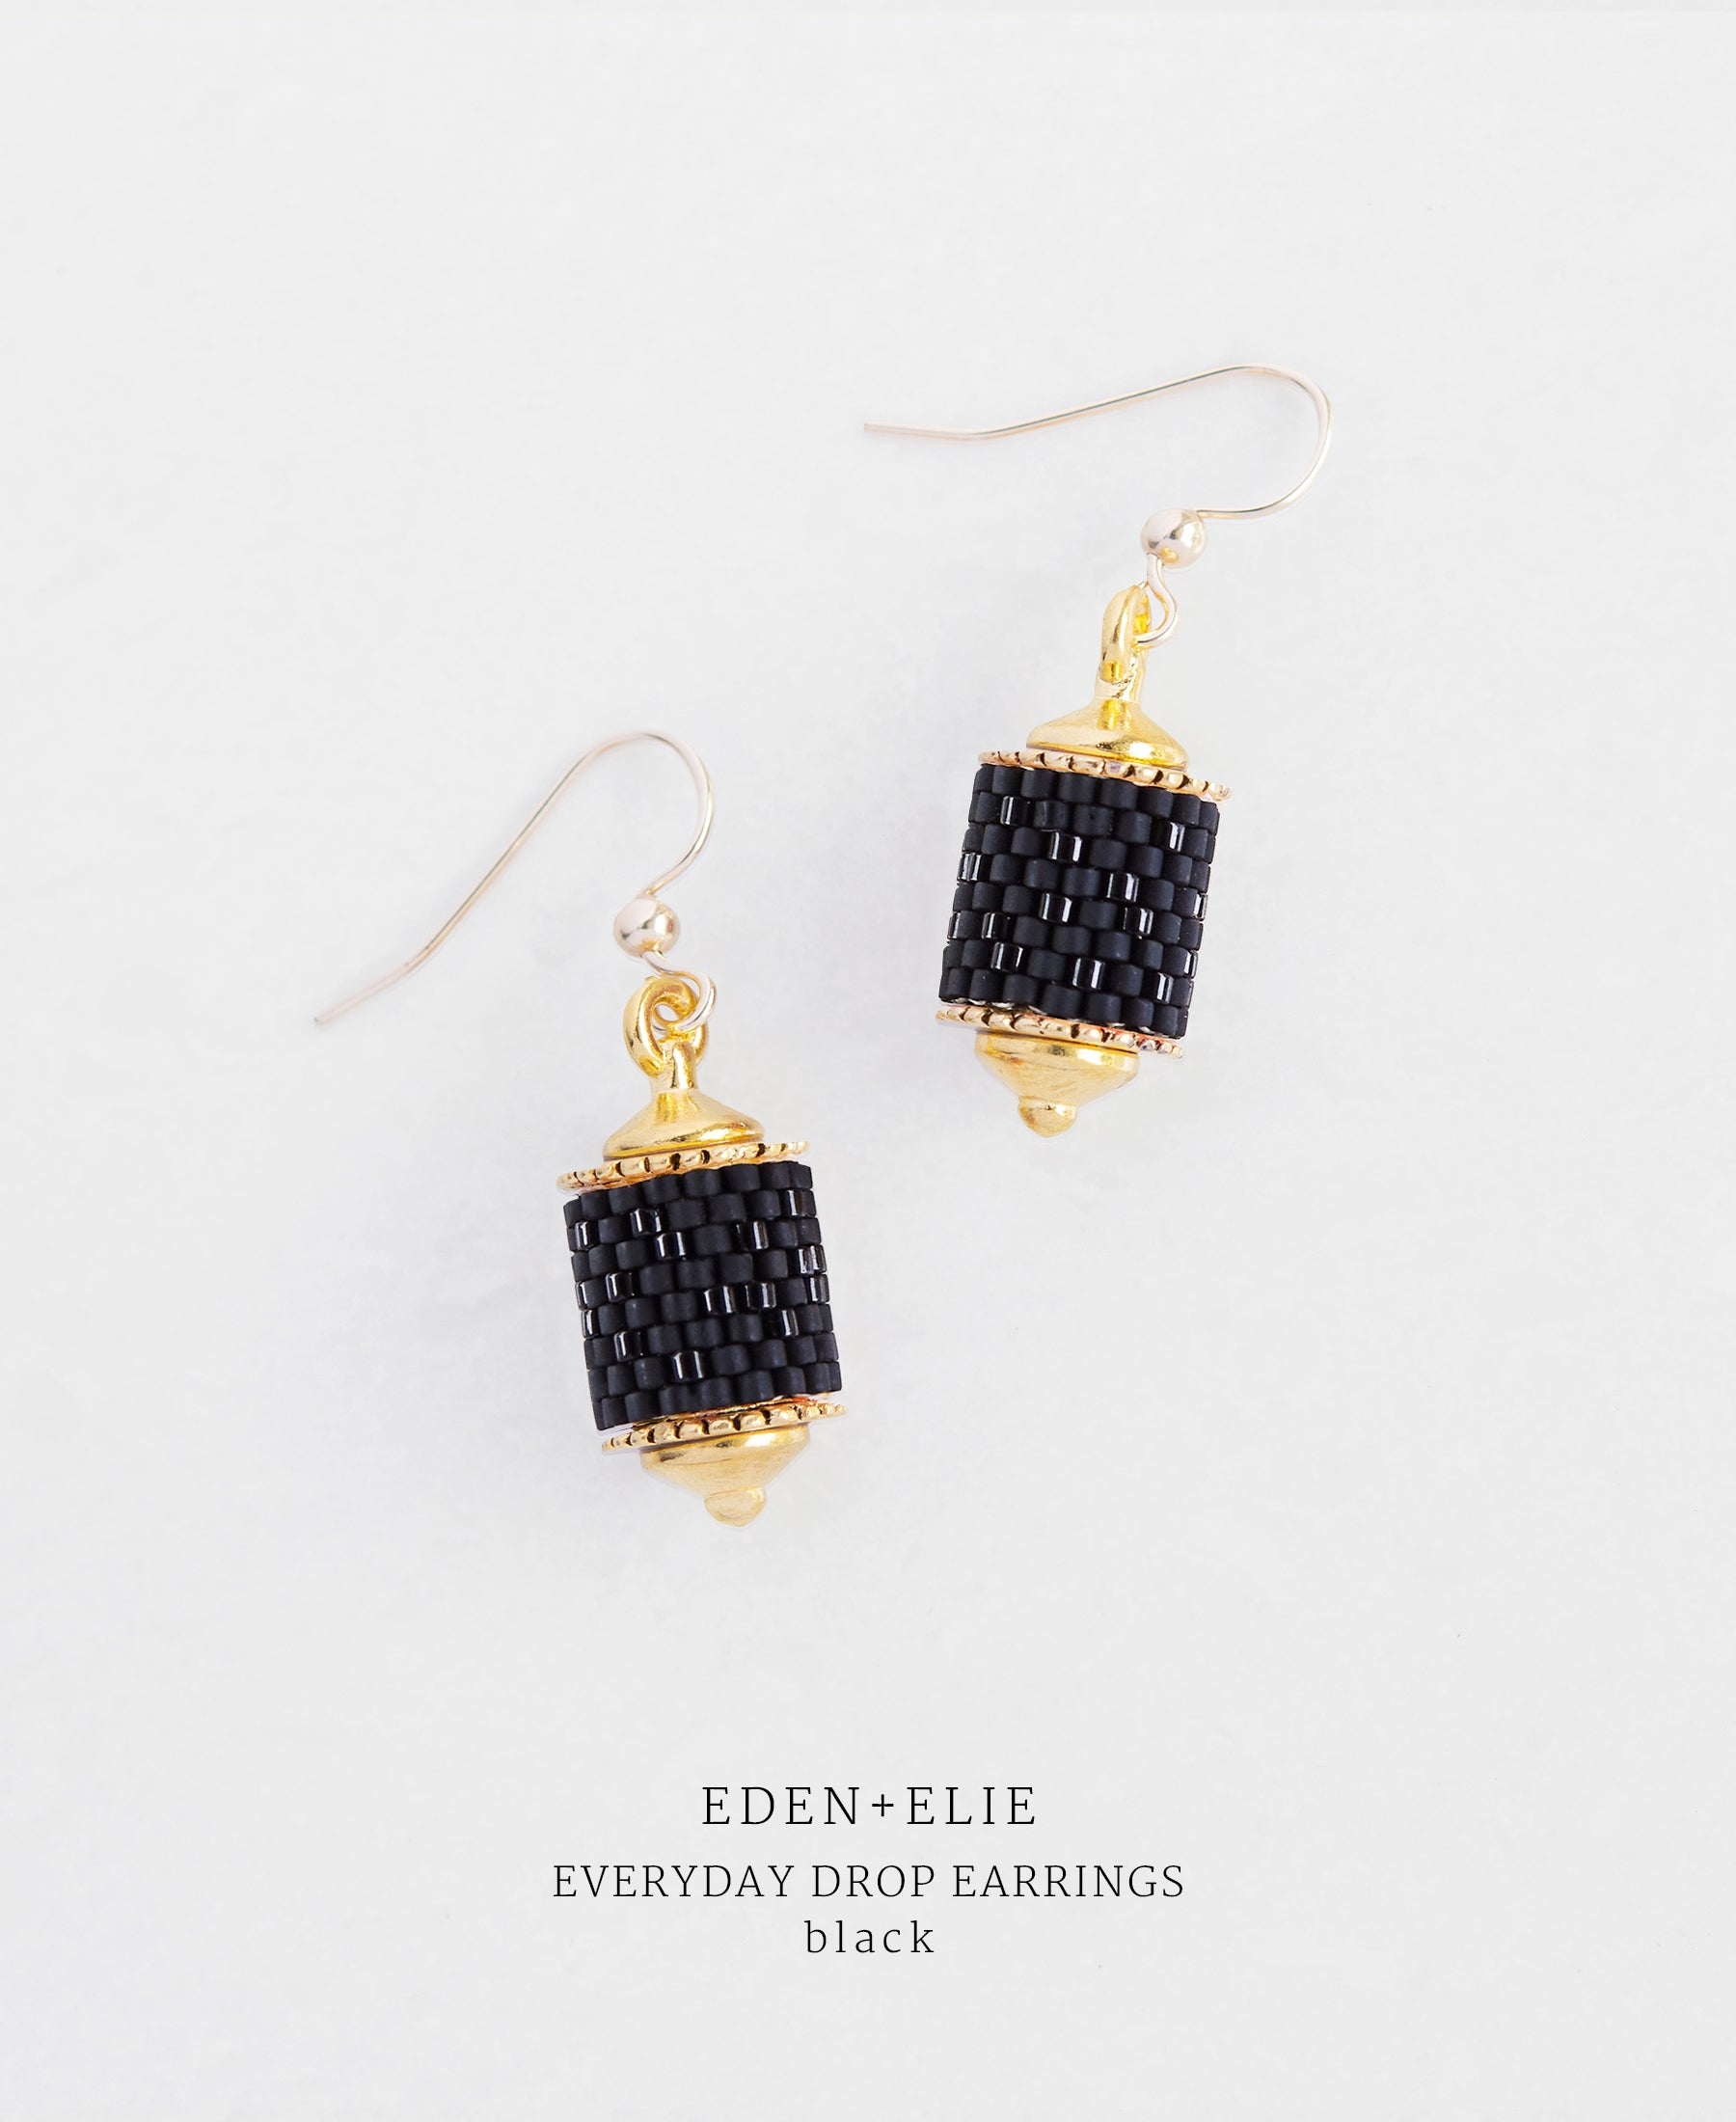 EDEN + ELIE Everyday drop earrings - basic black